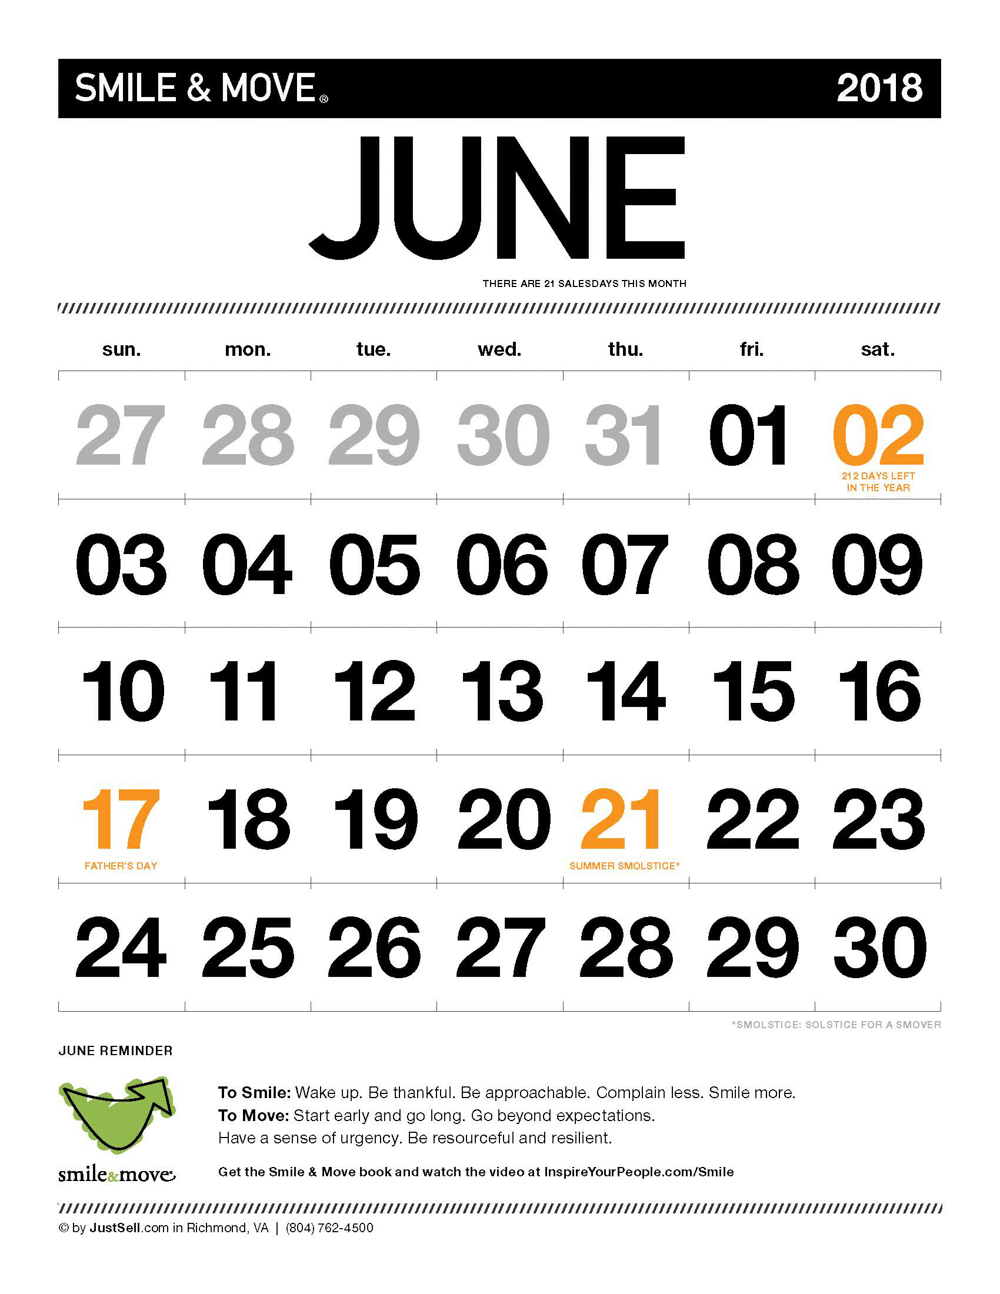 InspireYourPeople.com Monthly Calendar June 2018